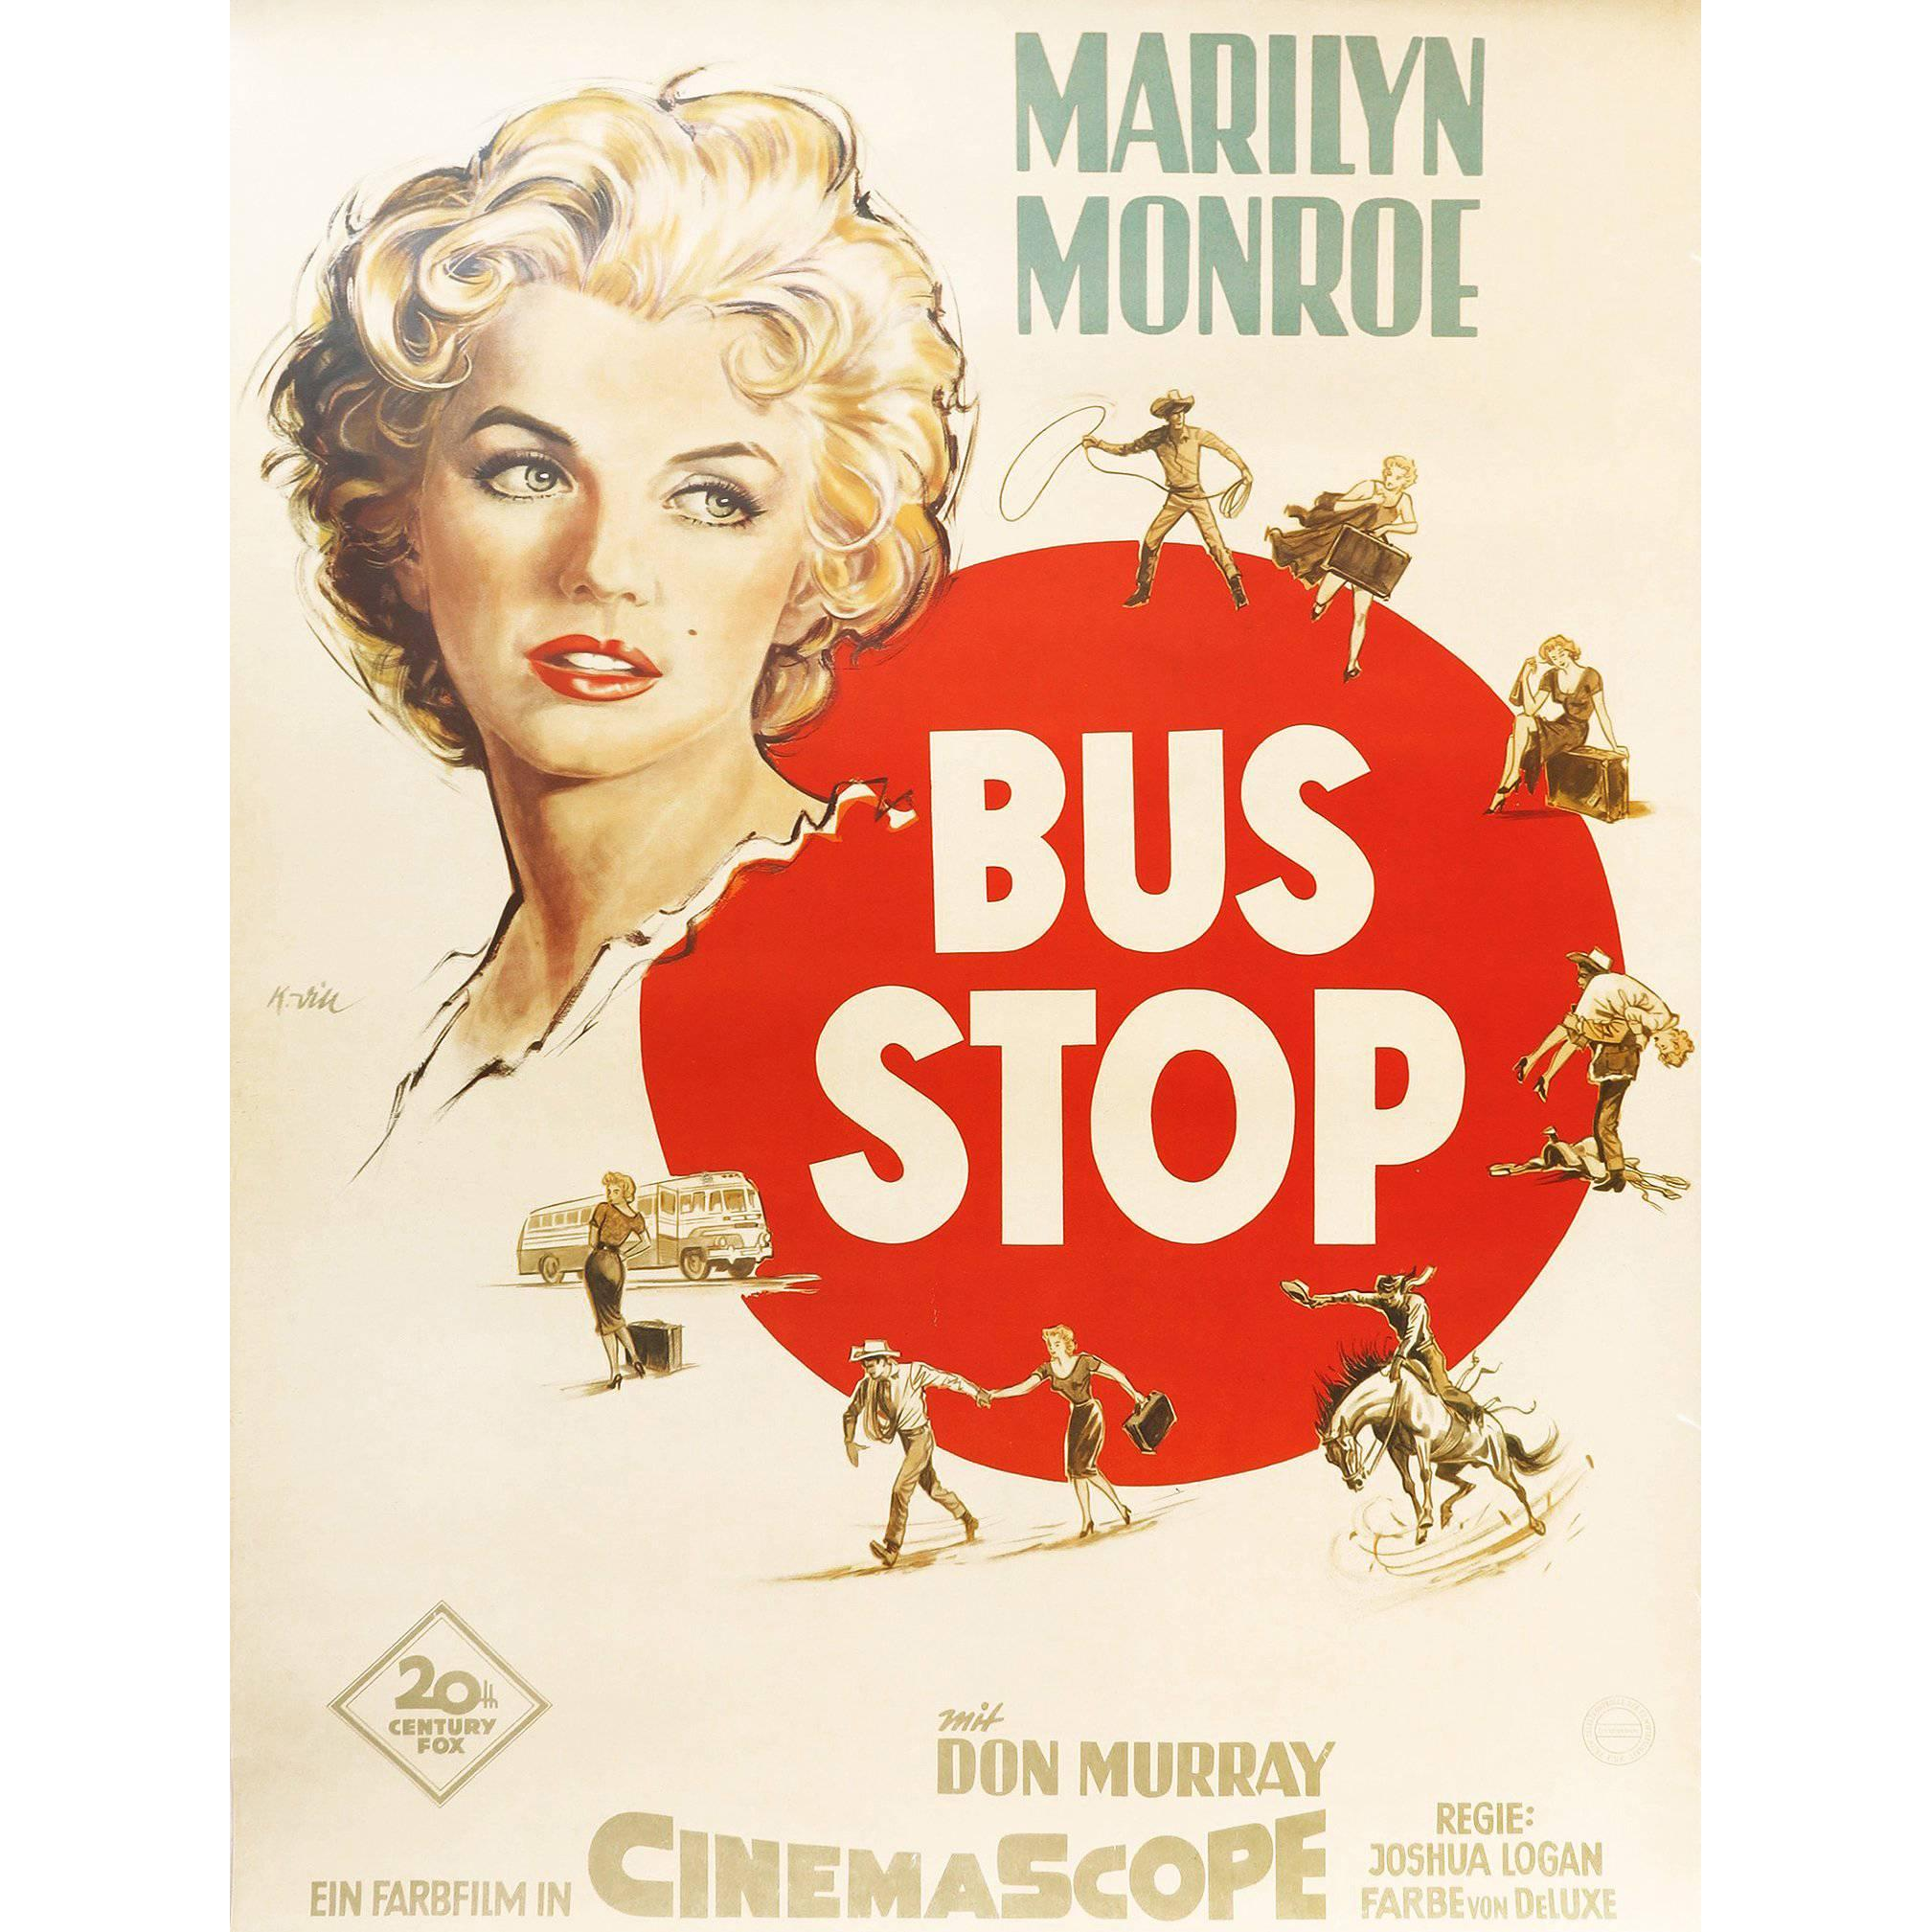 1956 Marilyn Monroe and Don Murray 'Bus Stop' German Movie Poster